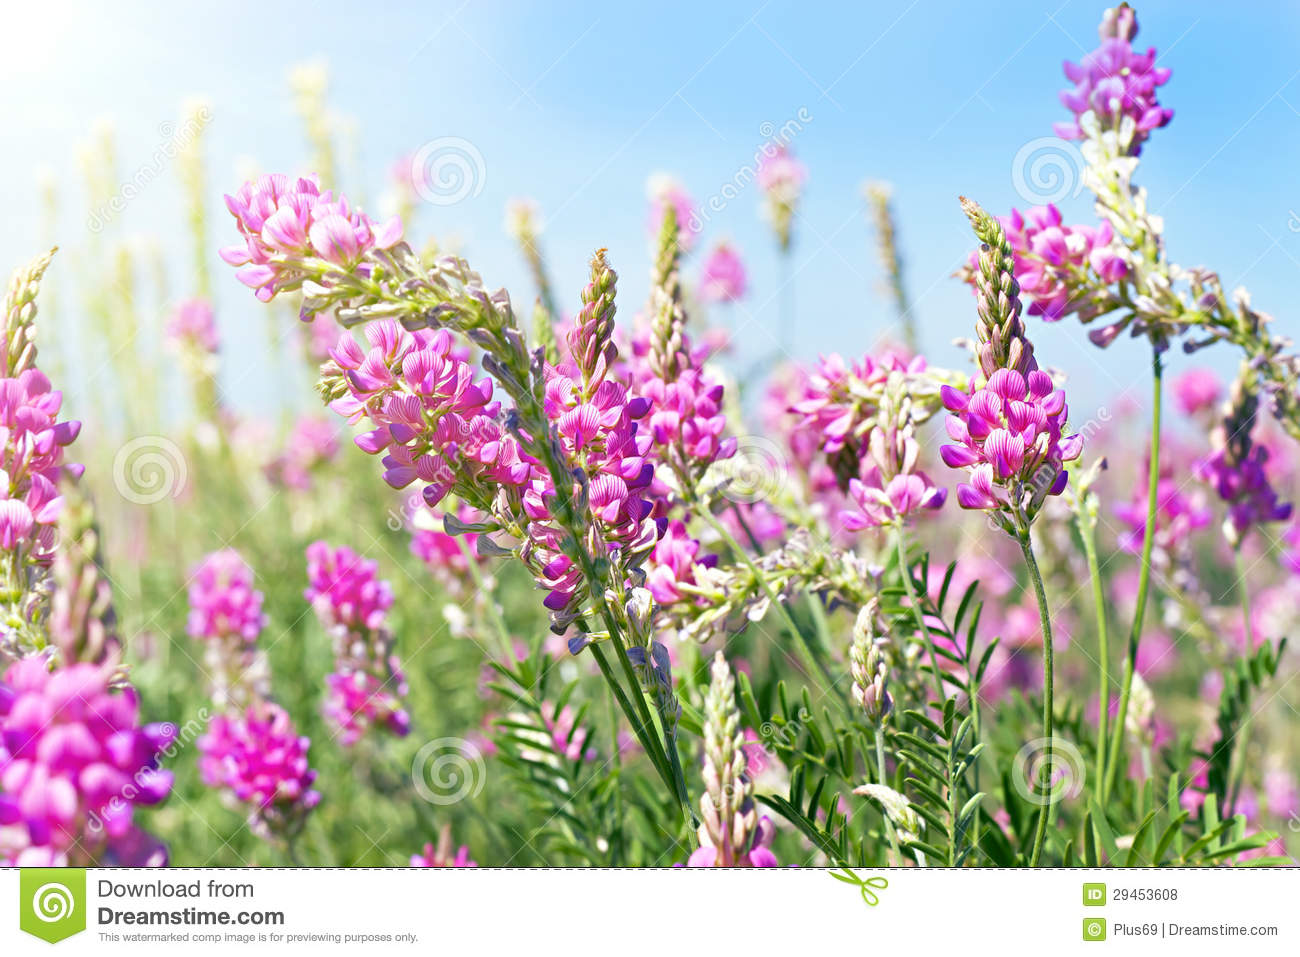 View The Sky Through The Green Grass With Pink Flowers Stock Photo